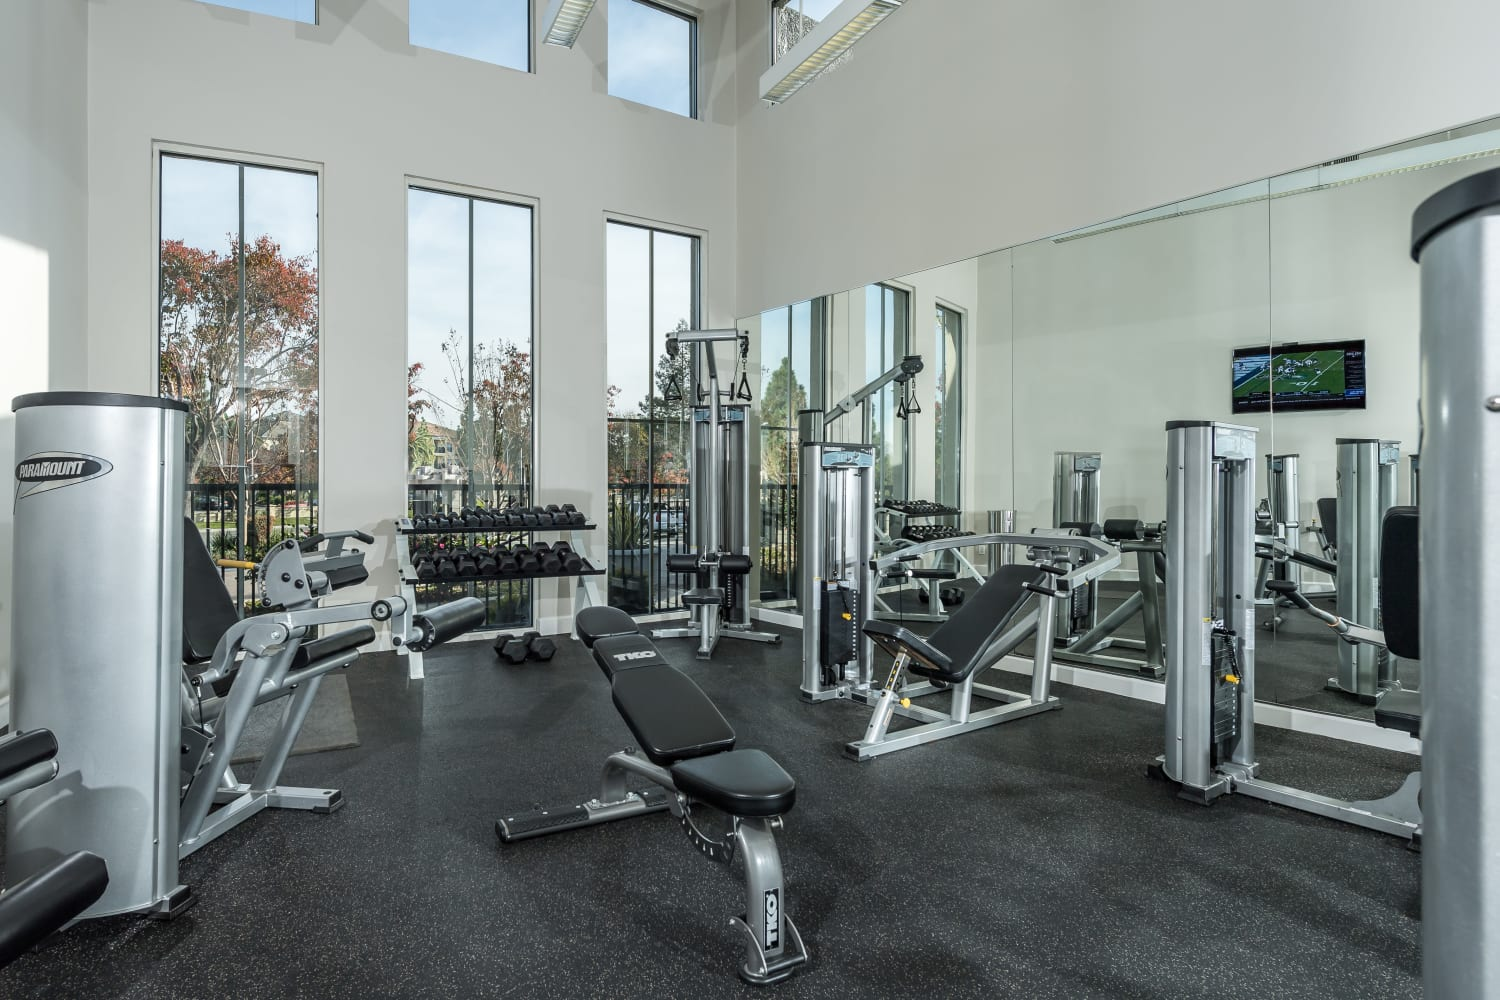 Well-equipped fitness center at Bella Vista Apartments in Santa Clara, California